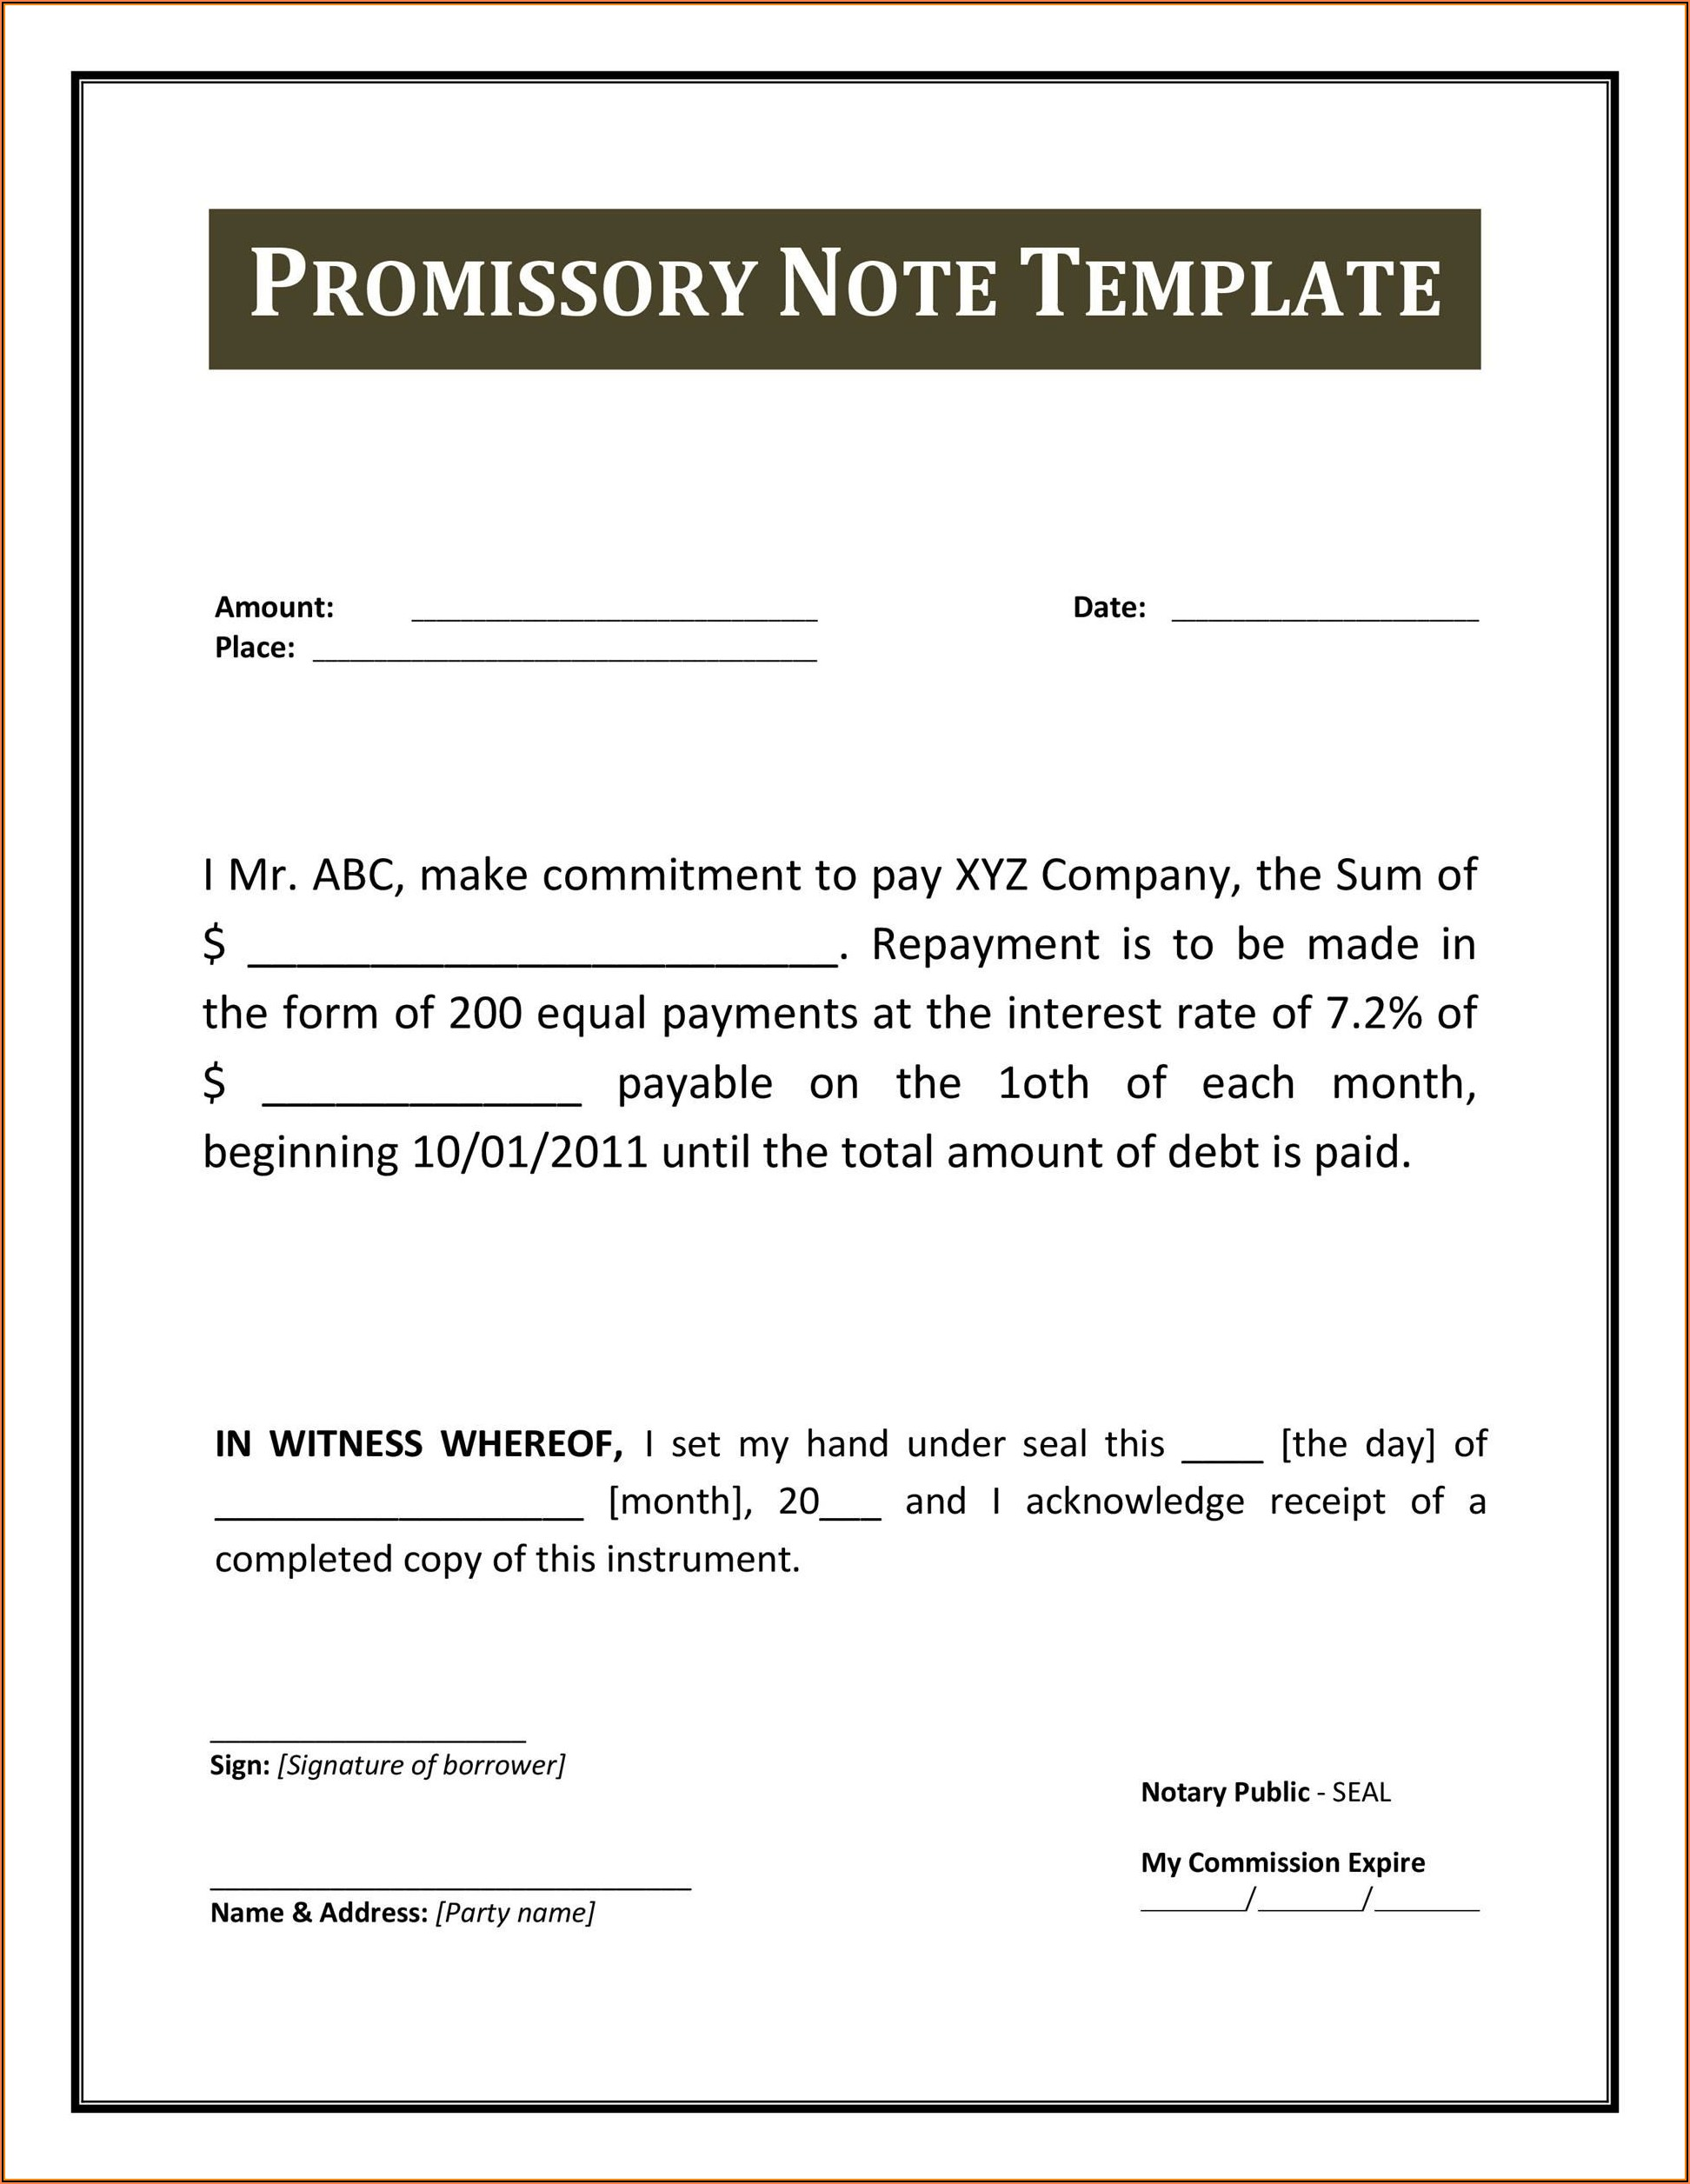 Earnest Money Promissory Note Form